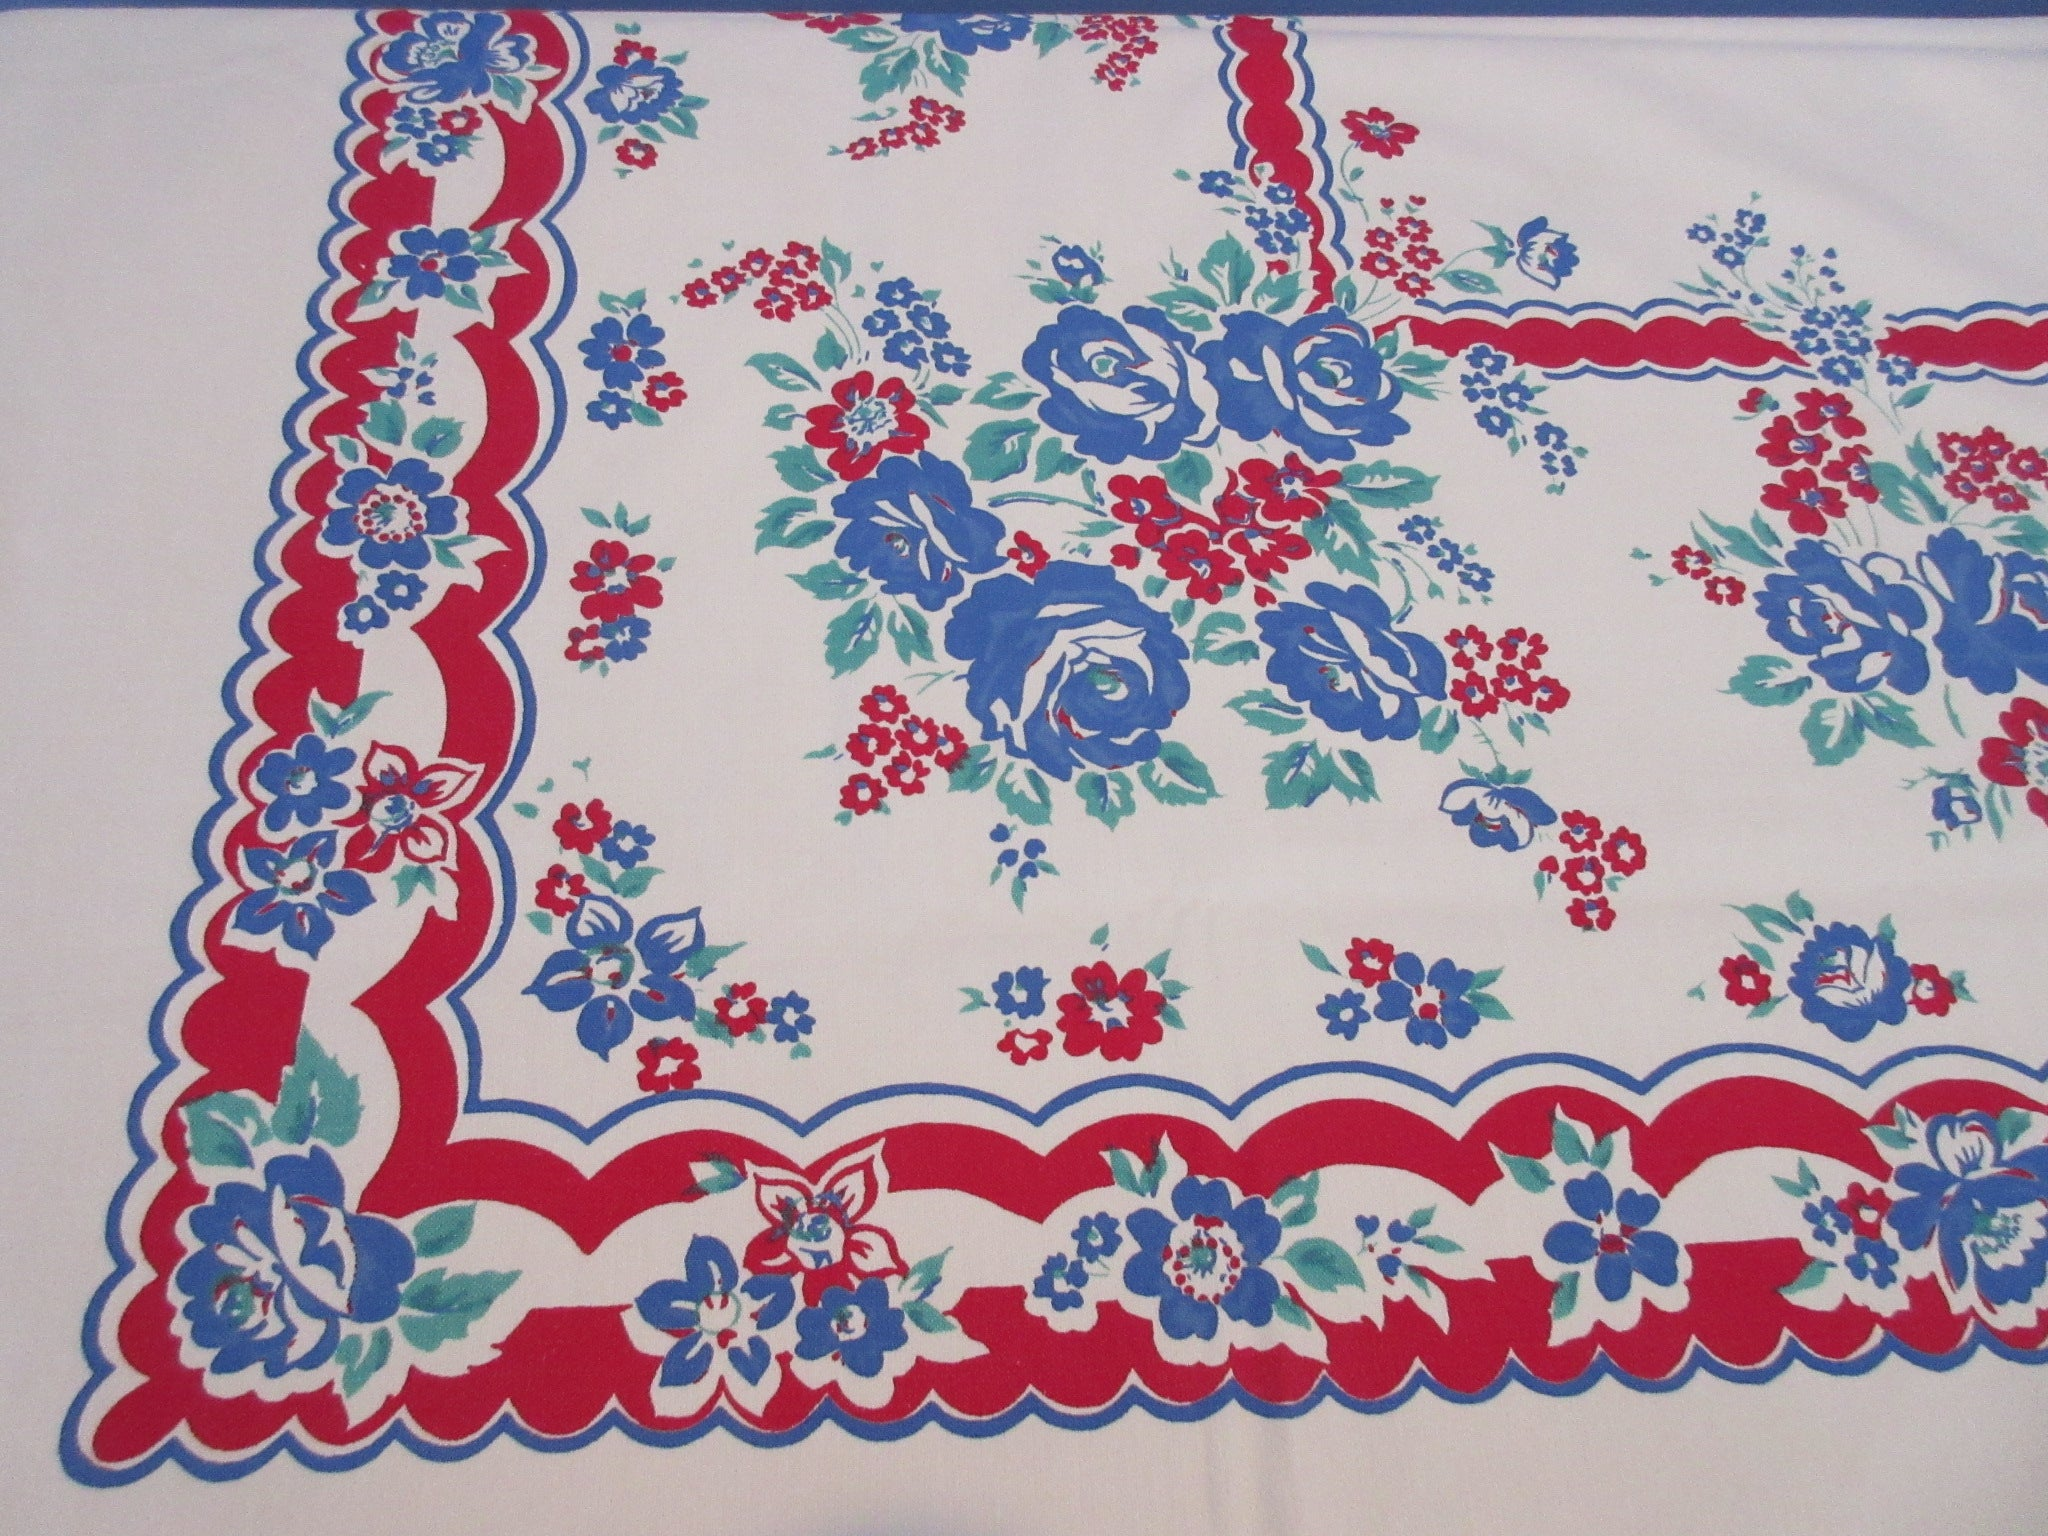 TLC Larger Blue Roses on Red Primary Floral Vintage Printed Tablecloth (73 X 56)